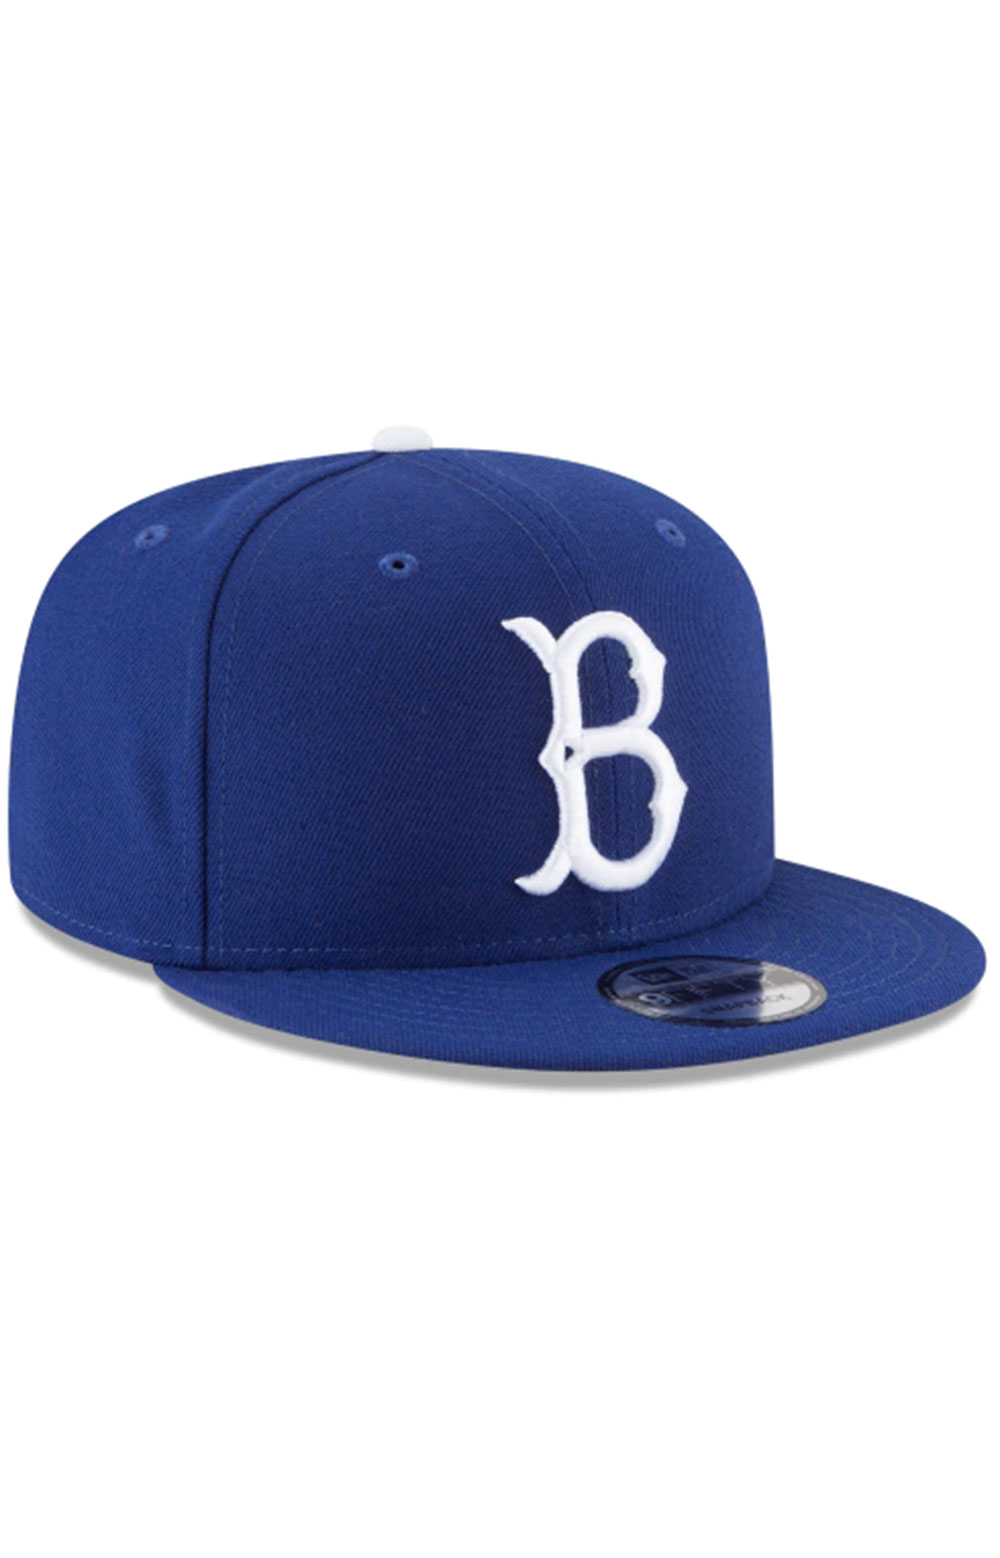 Brooklyn Dodgers Team Color Basic 9Fifty Snap-Back Hat  6